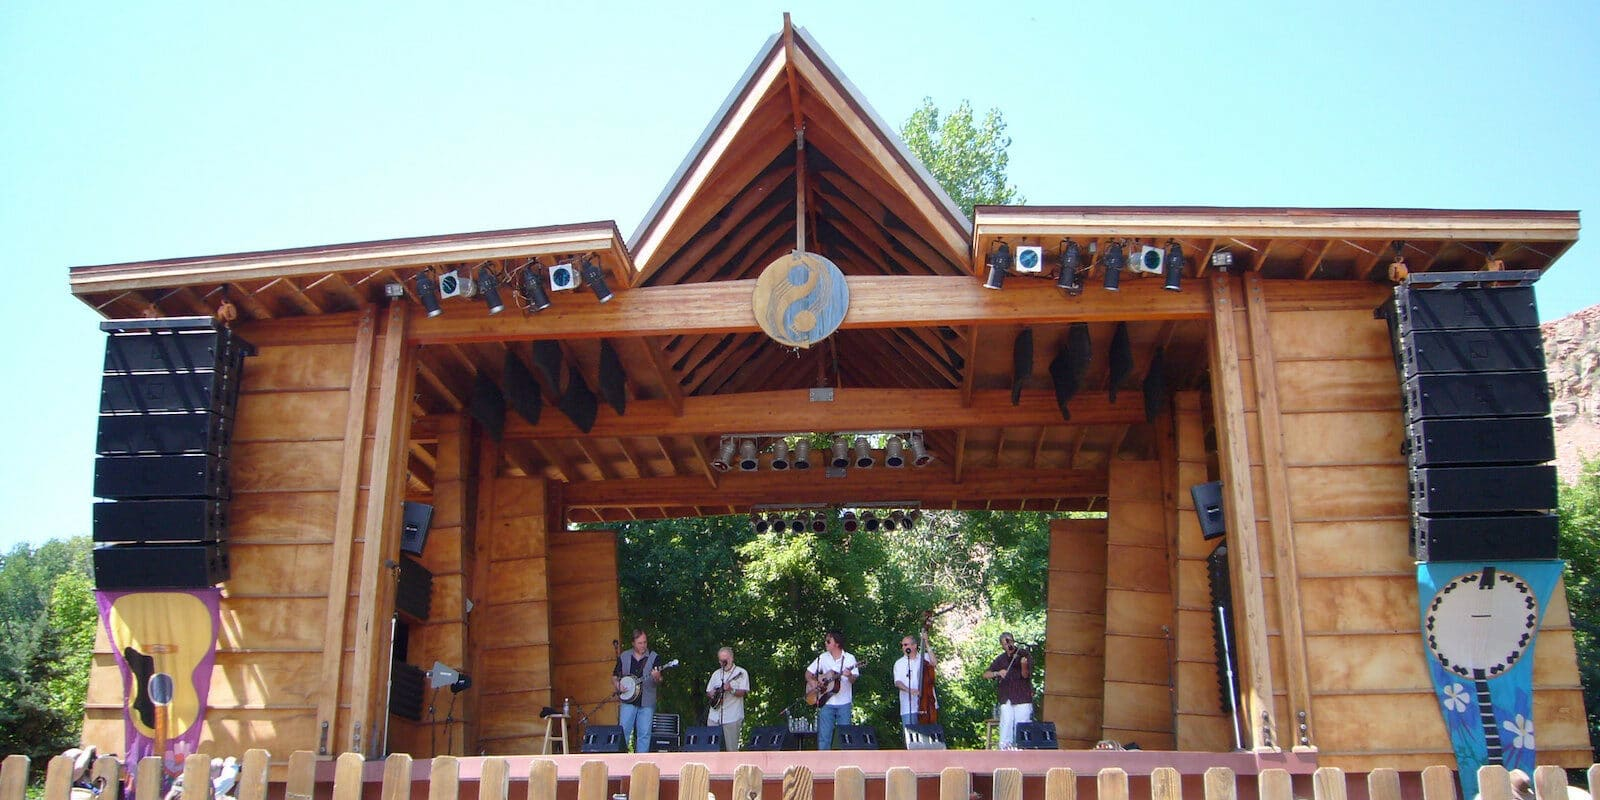 Image of the stage of Rockygrass Festival in Lyons, CO